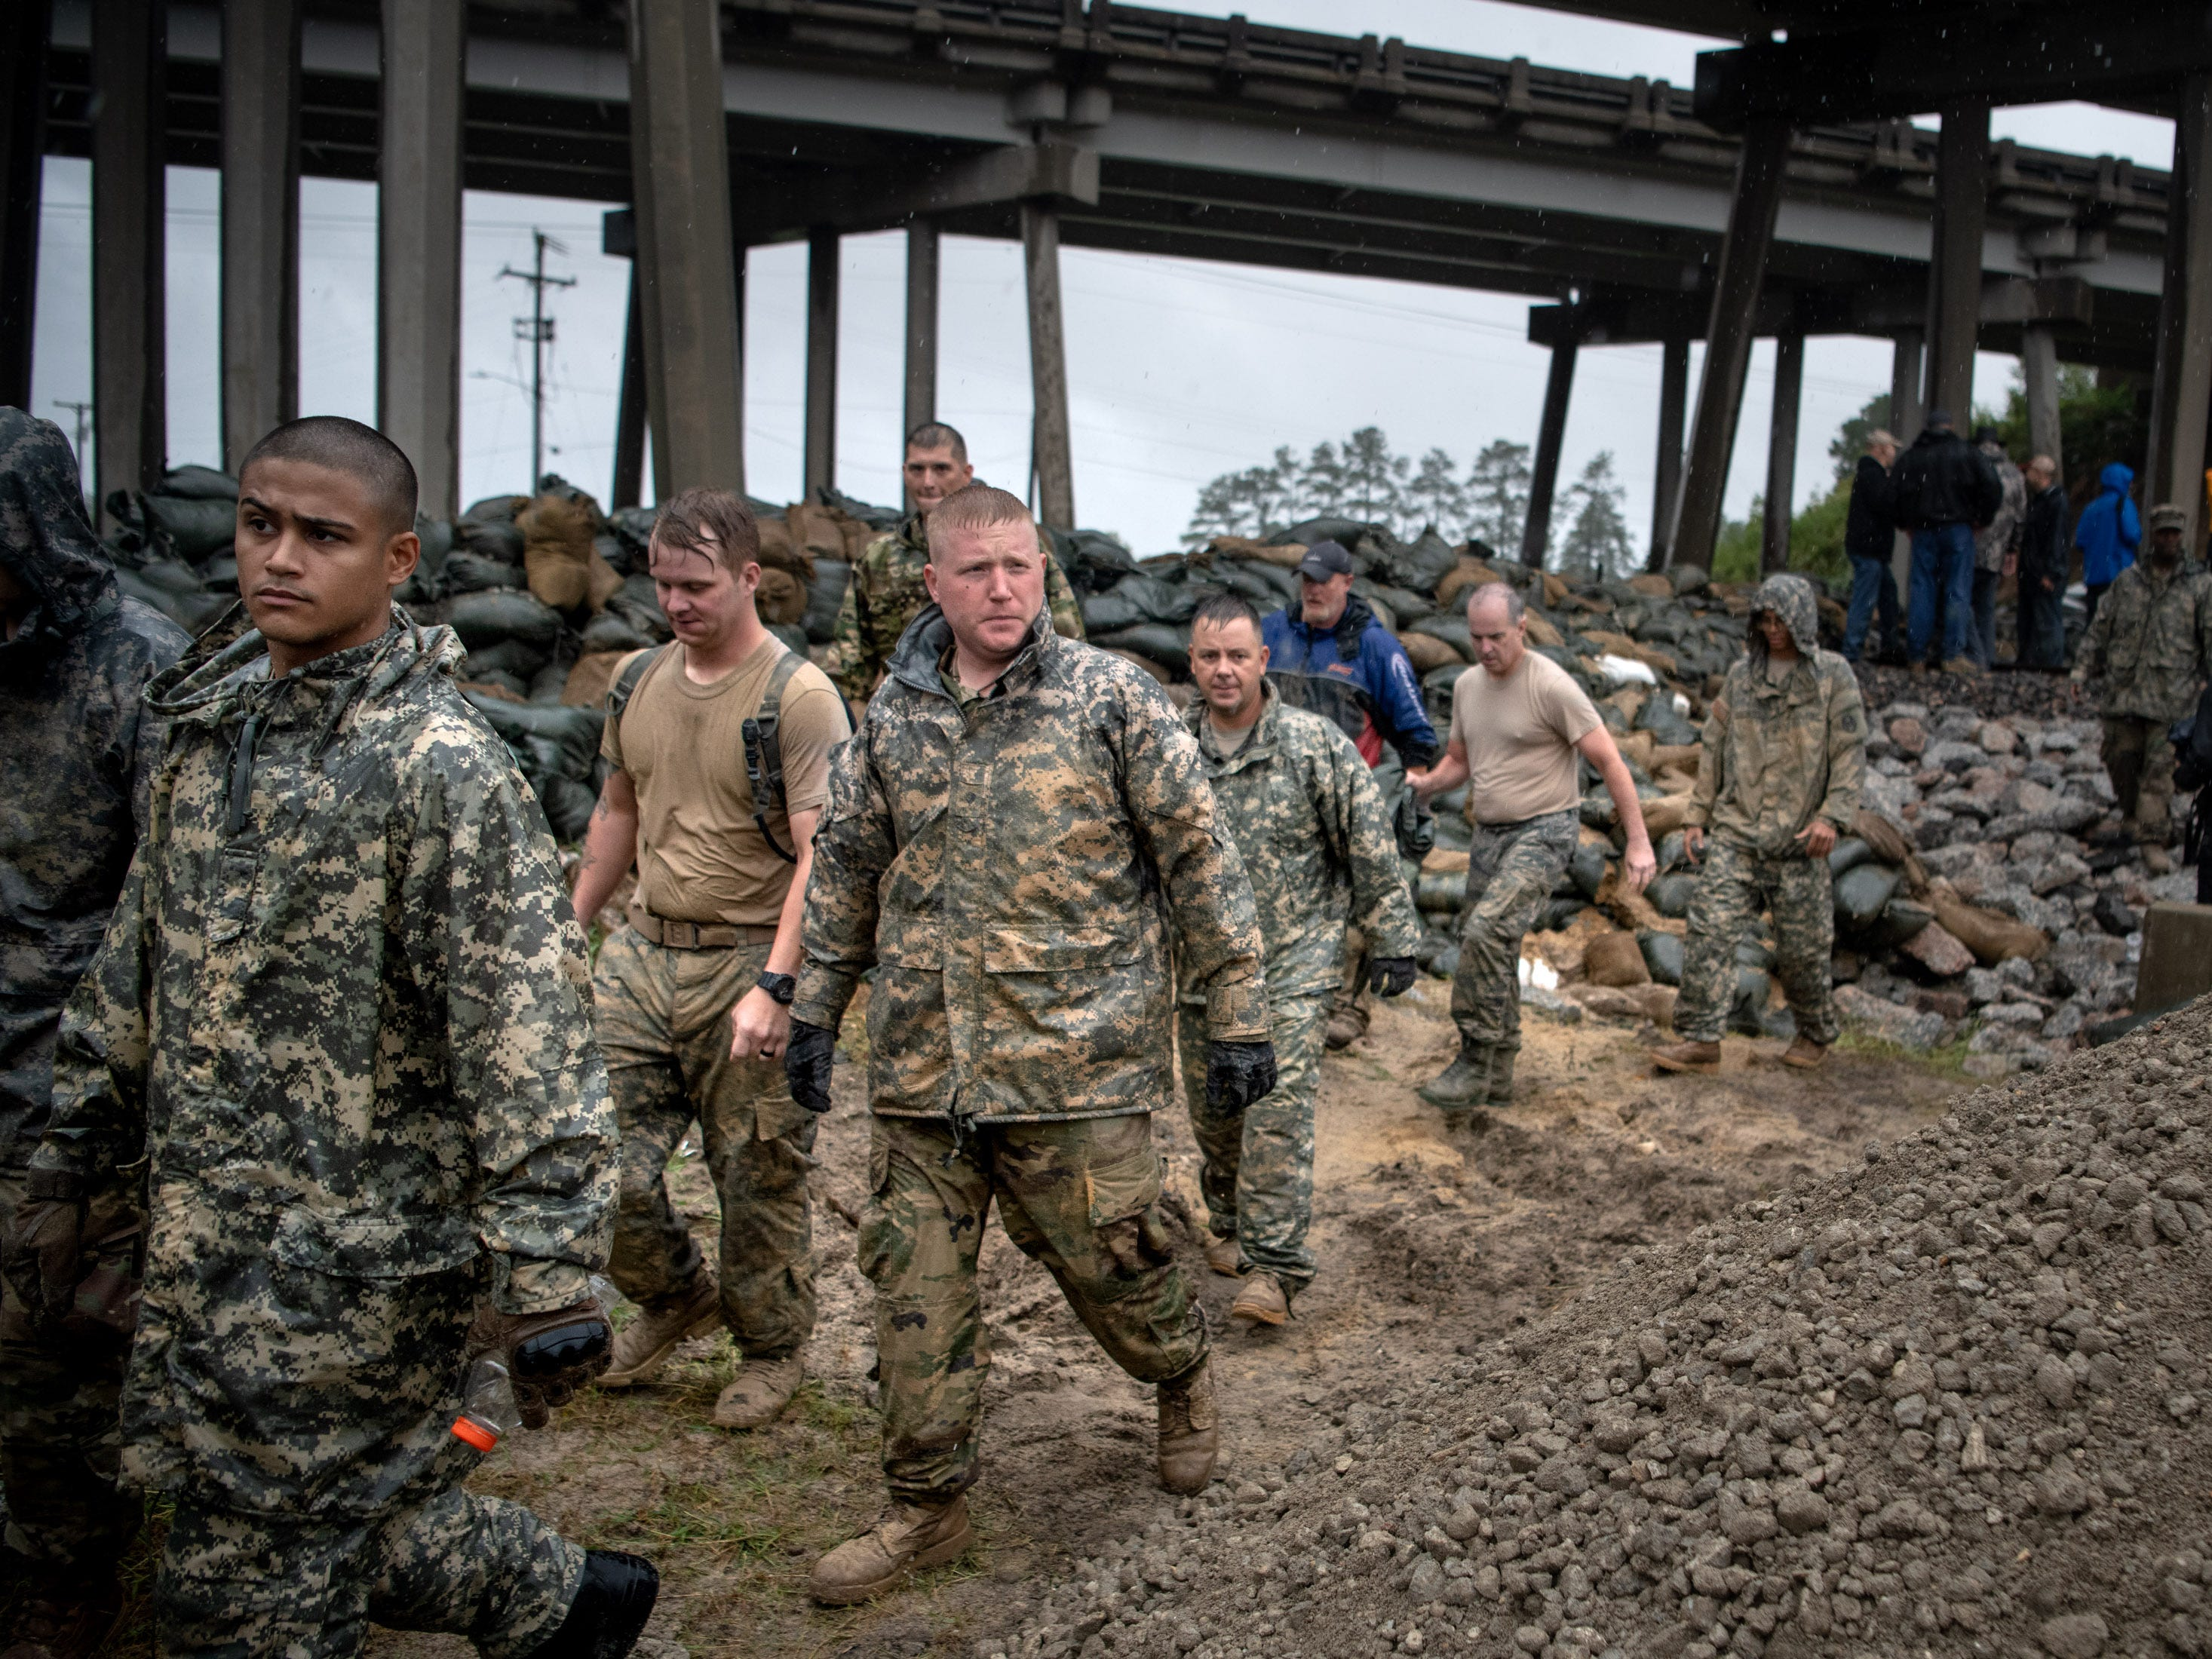 Soldiers from the North Carolina National Guard depart after reinforcing a low-lying area with sandbags as Hurricane Florence approaches Lumberton, N.C., Friday, Sept. 14, 2018.